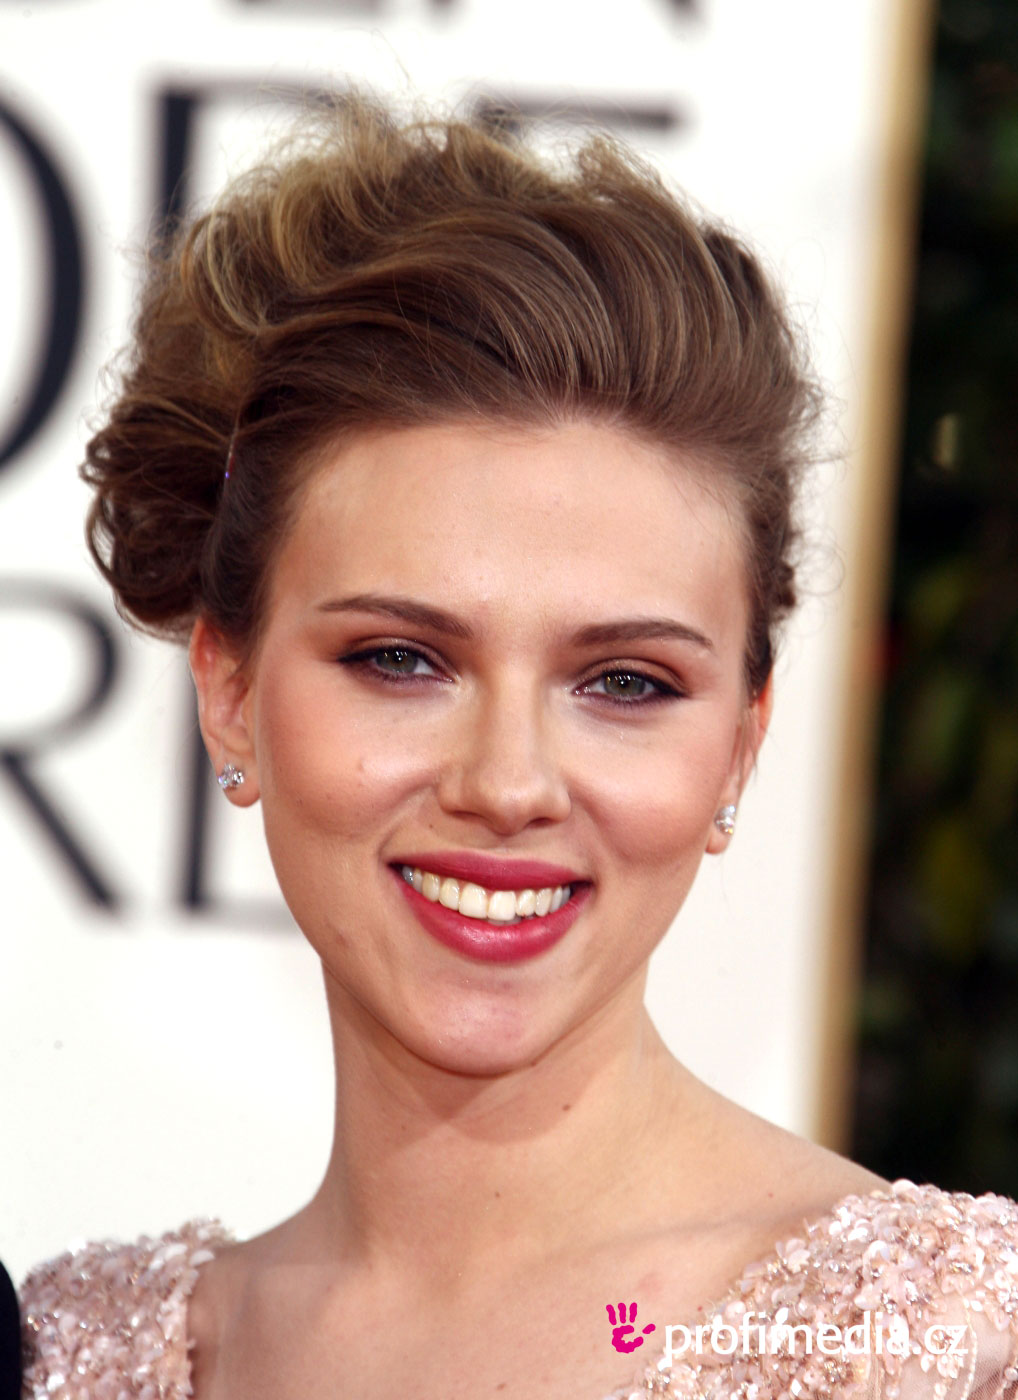 scarlett johansson frisur zum ausprobieren in efrisuren. Black Bedroom Furniture Sets. Home Design Ideas